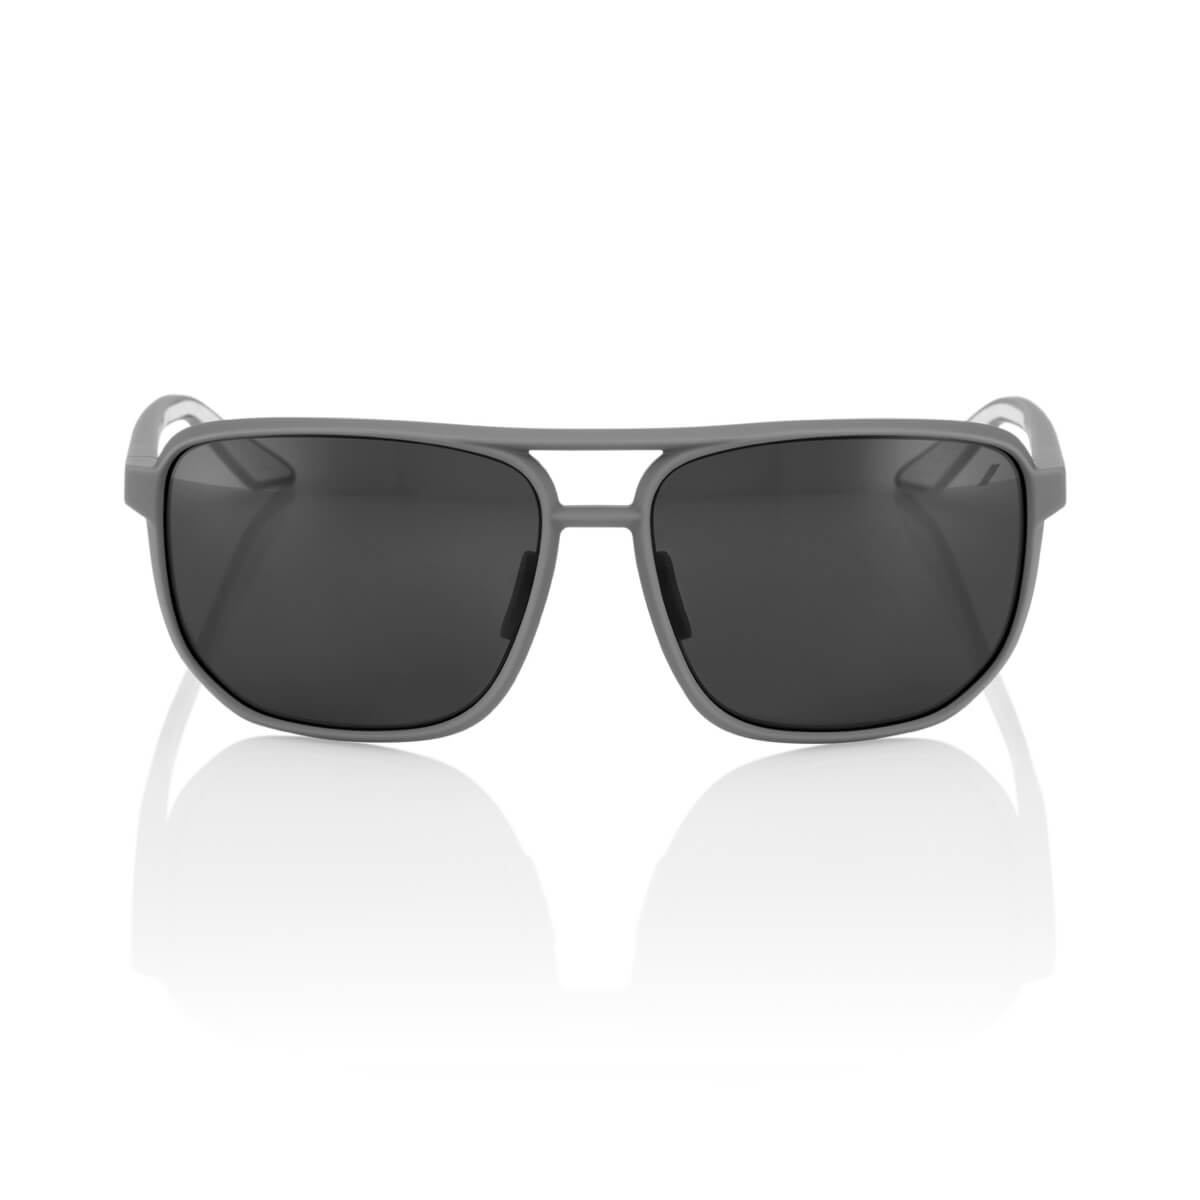 KONNOR Aviator Square – Soft Tact Dark Haze – Smoke Lens